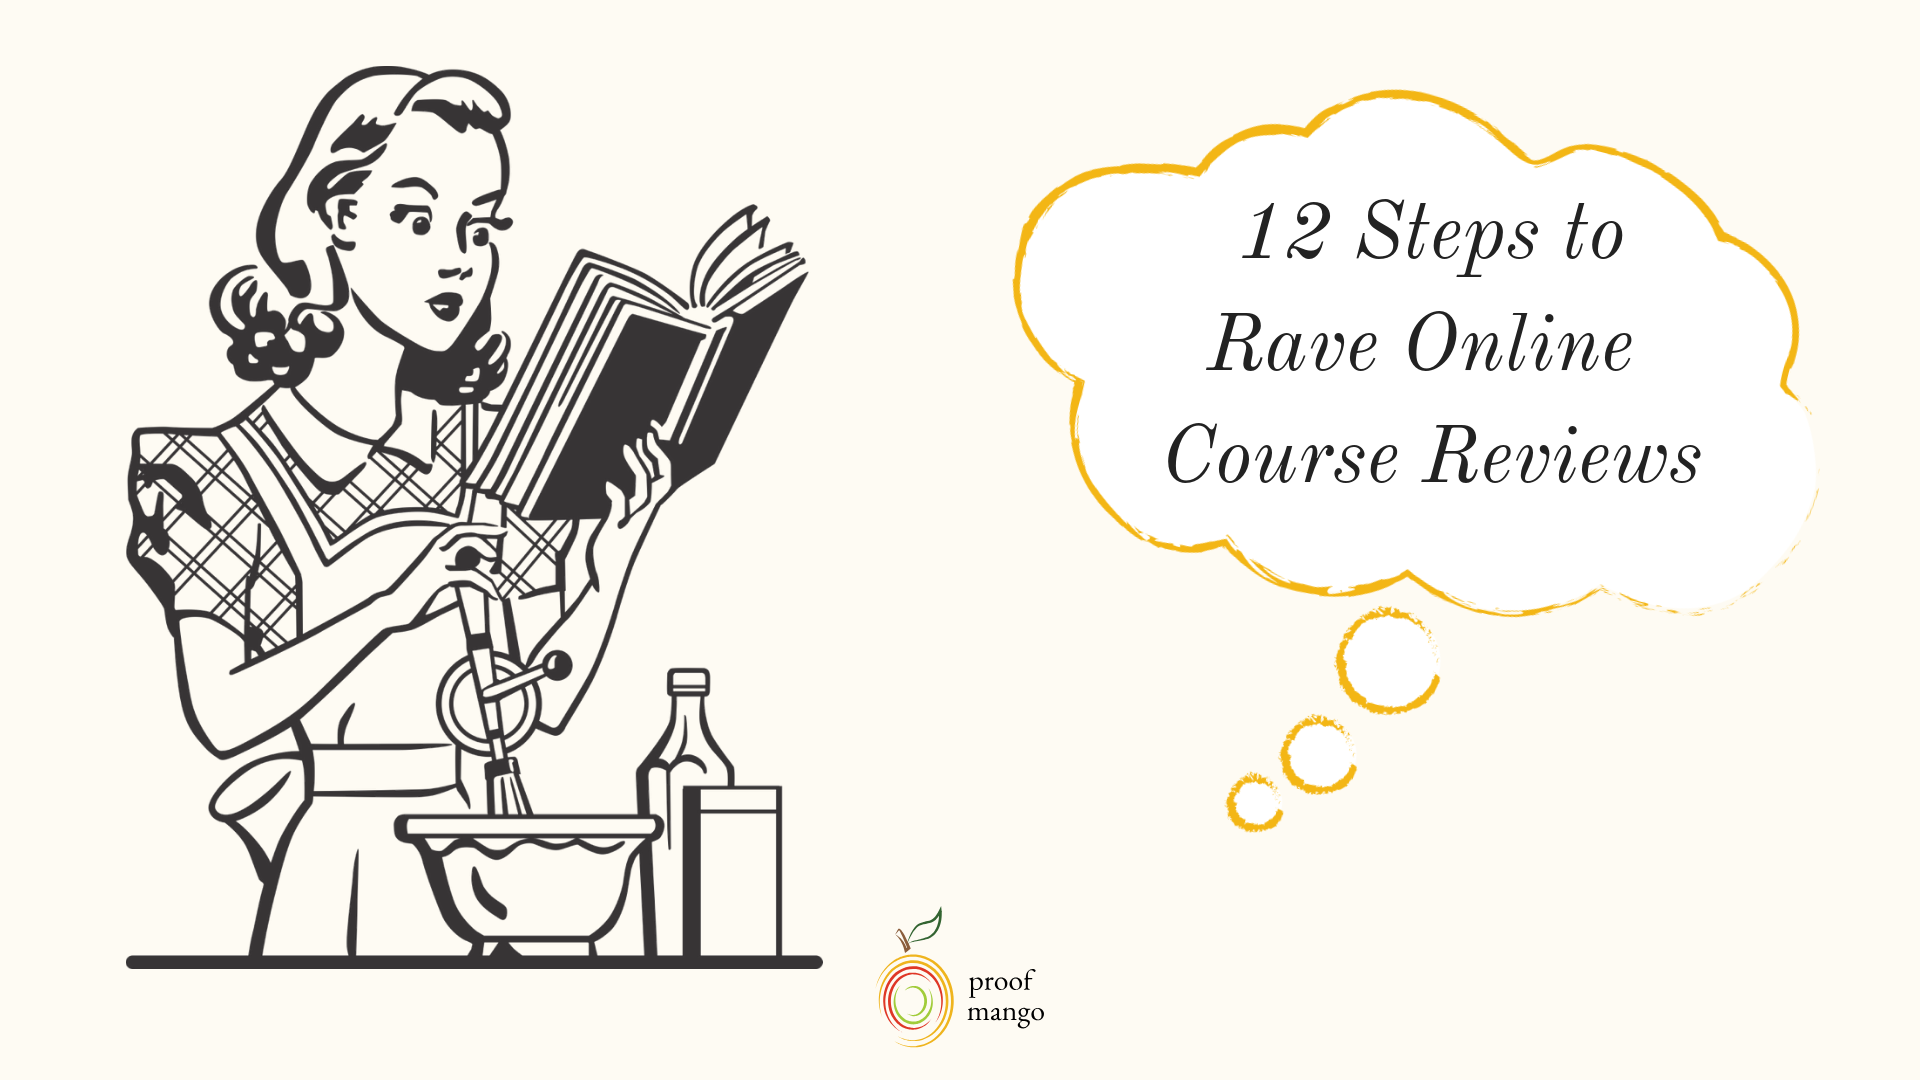 12 Steps to Rave Online Course Reviews